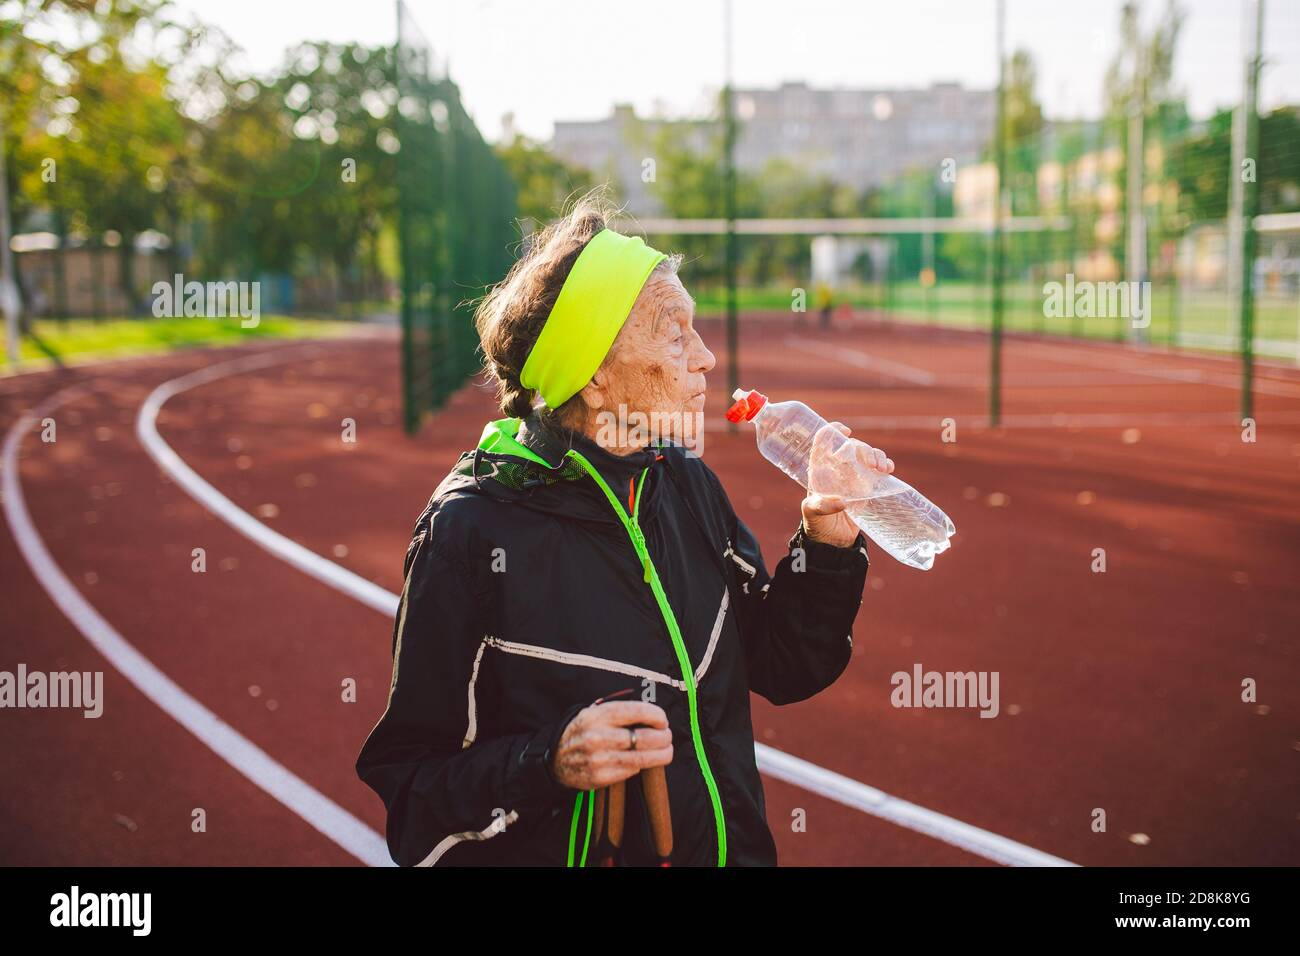 Age maturity, active lifestyle and wellness. Joyful retired woman with walking poles and bottle of water, refreshing during physical activity. Elderly Stock Photo